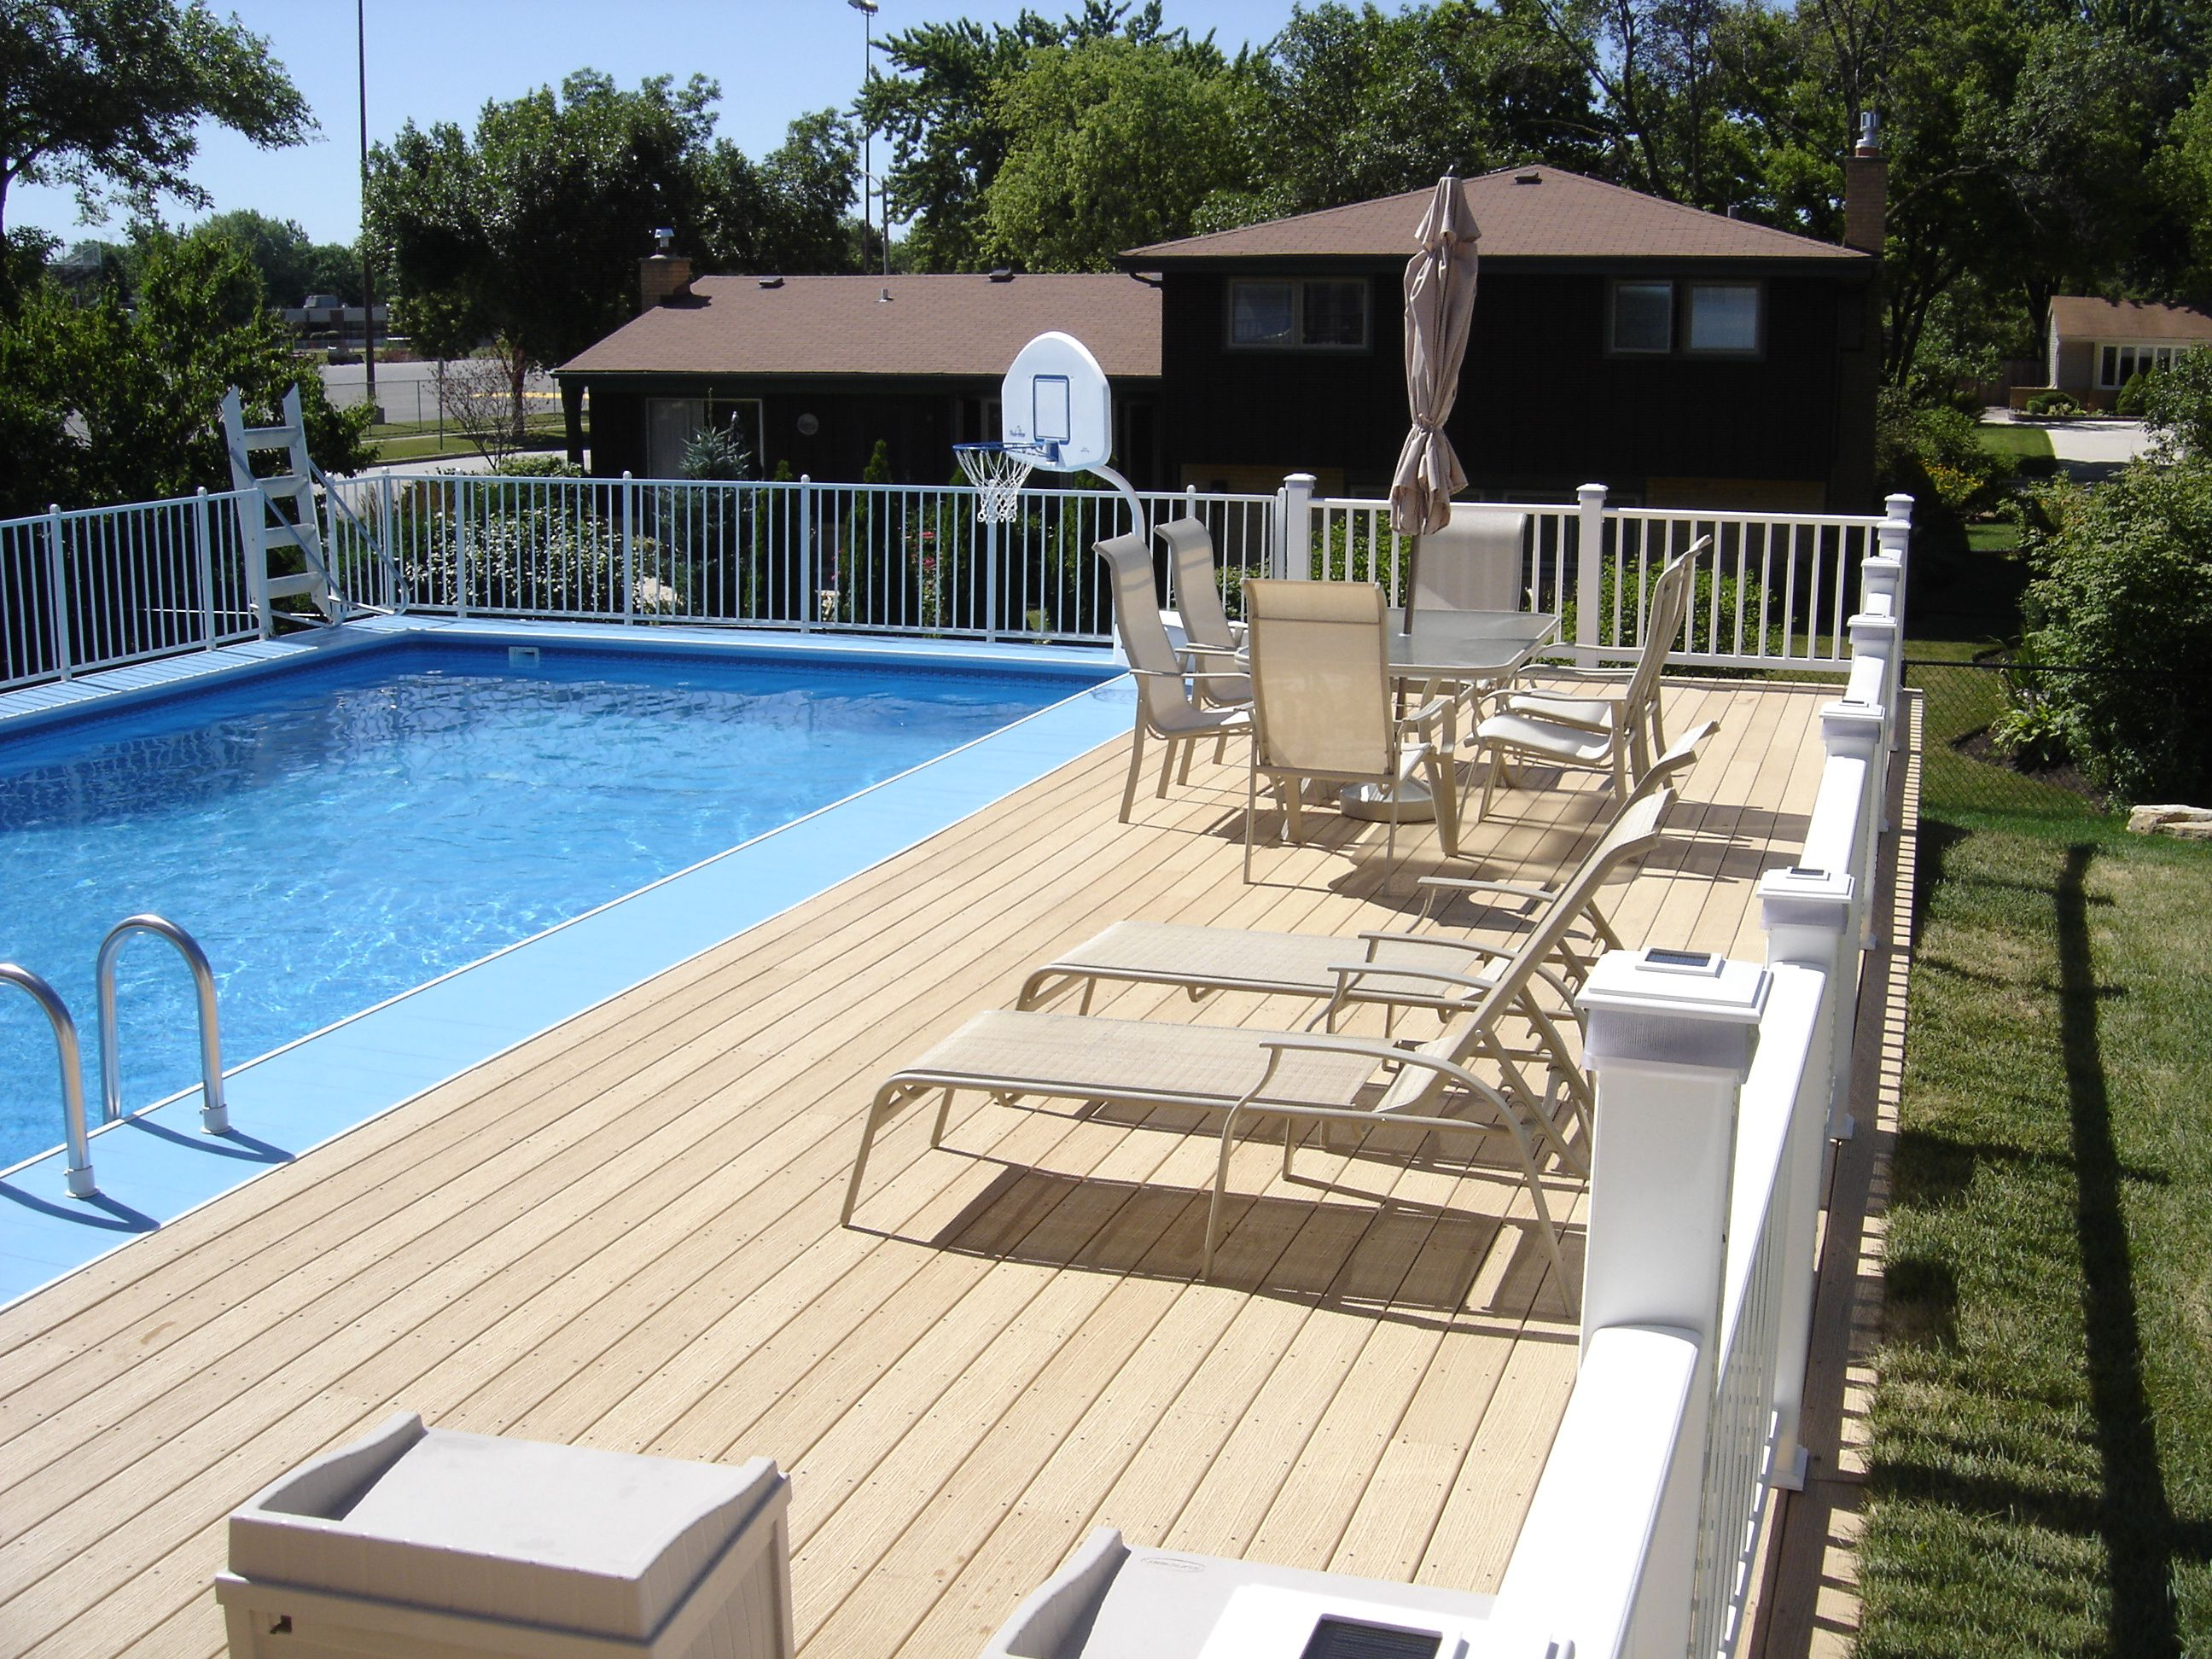 Pool Decks & Fences Above ground swimming pools